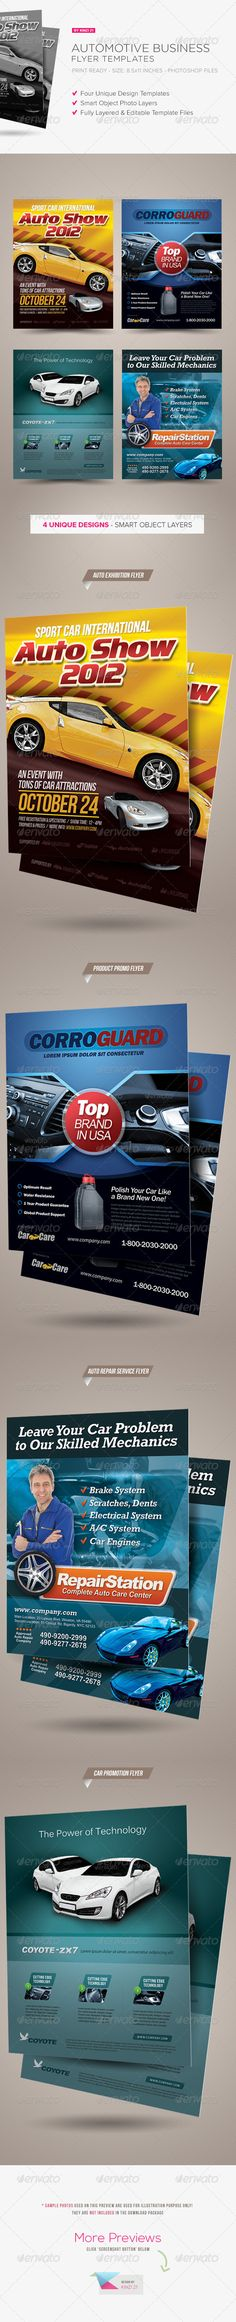 Car Wash Services Flyer Templates Car wash, Flyer template and Cars - car flyer template